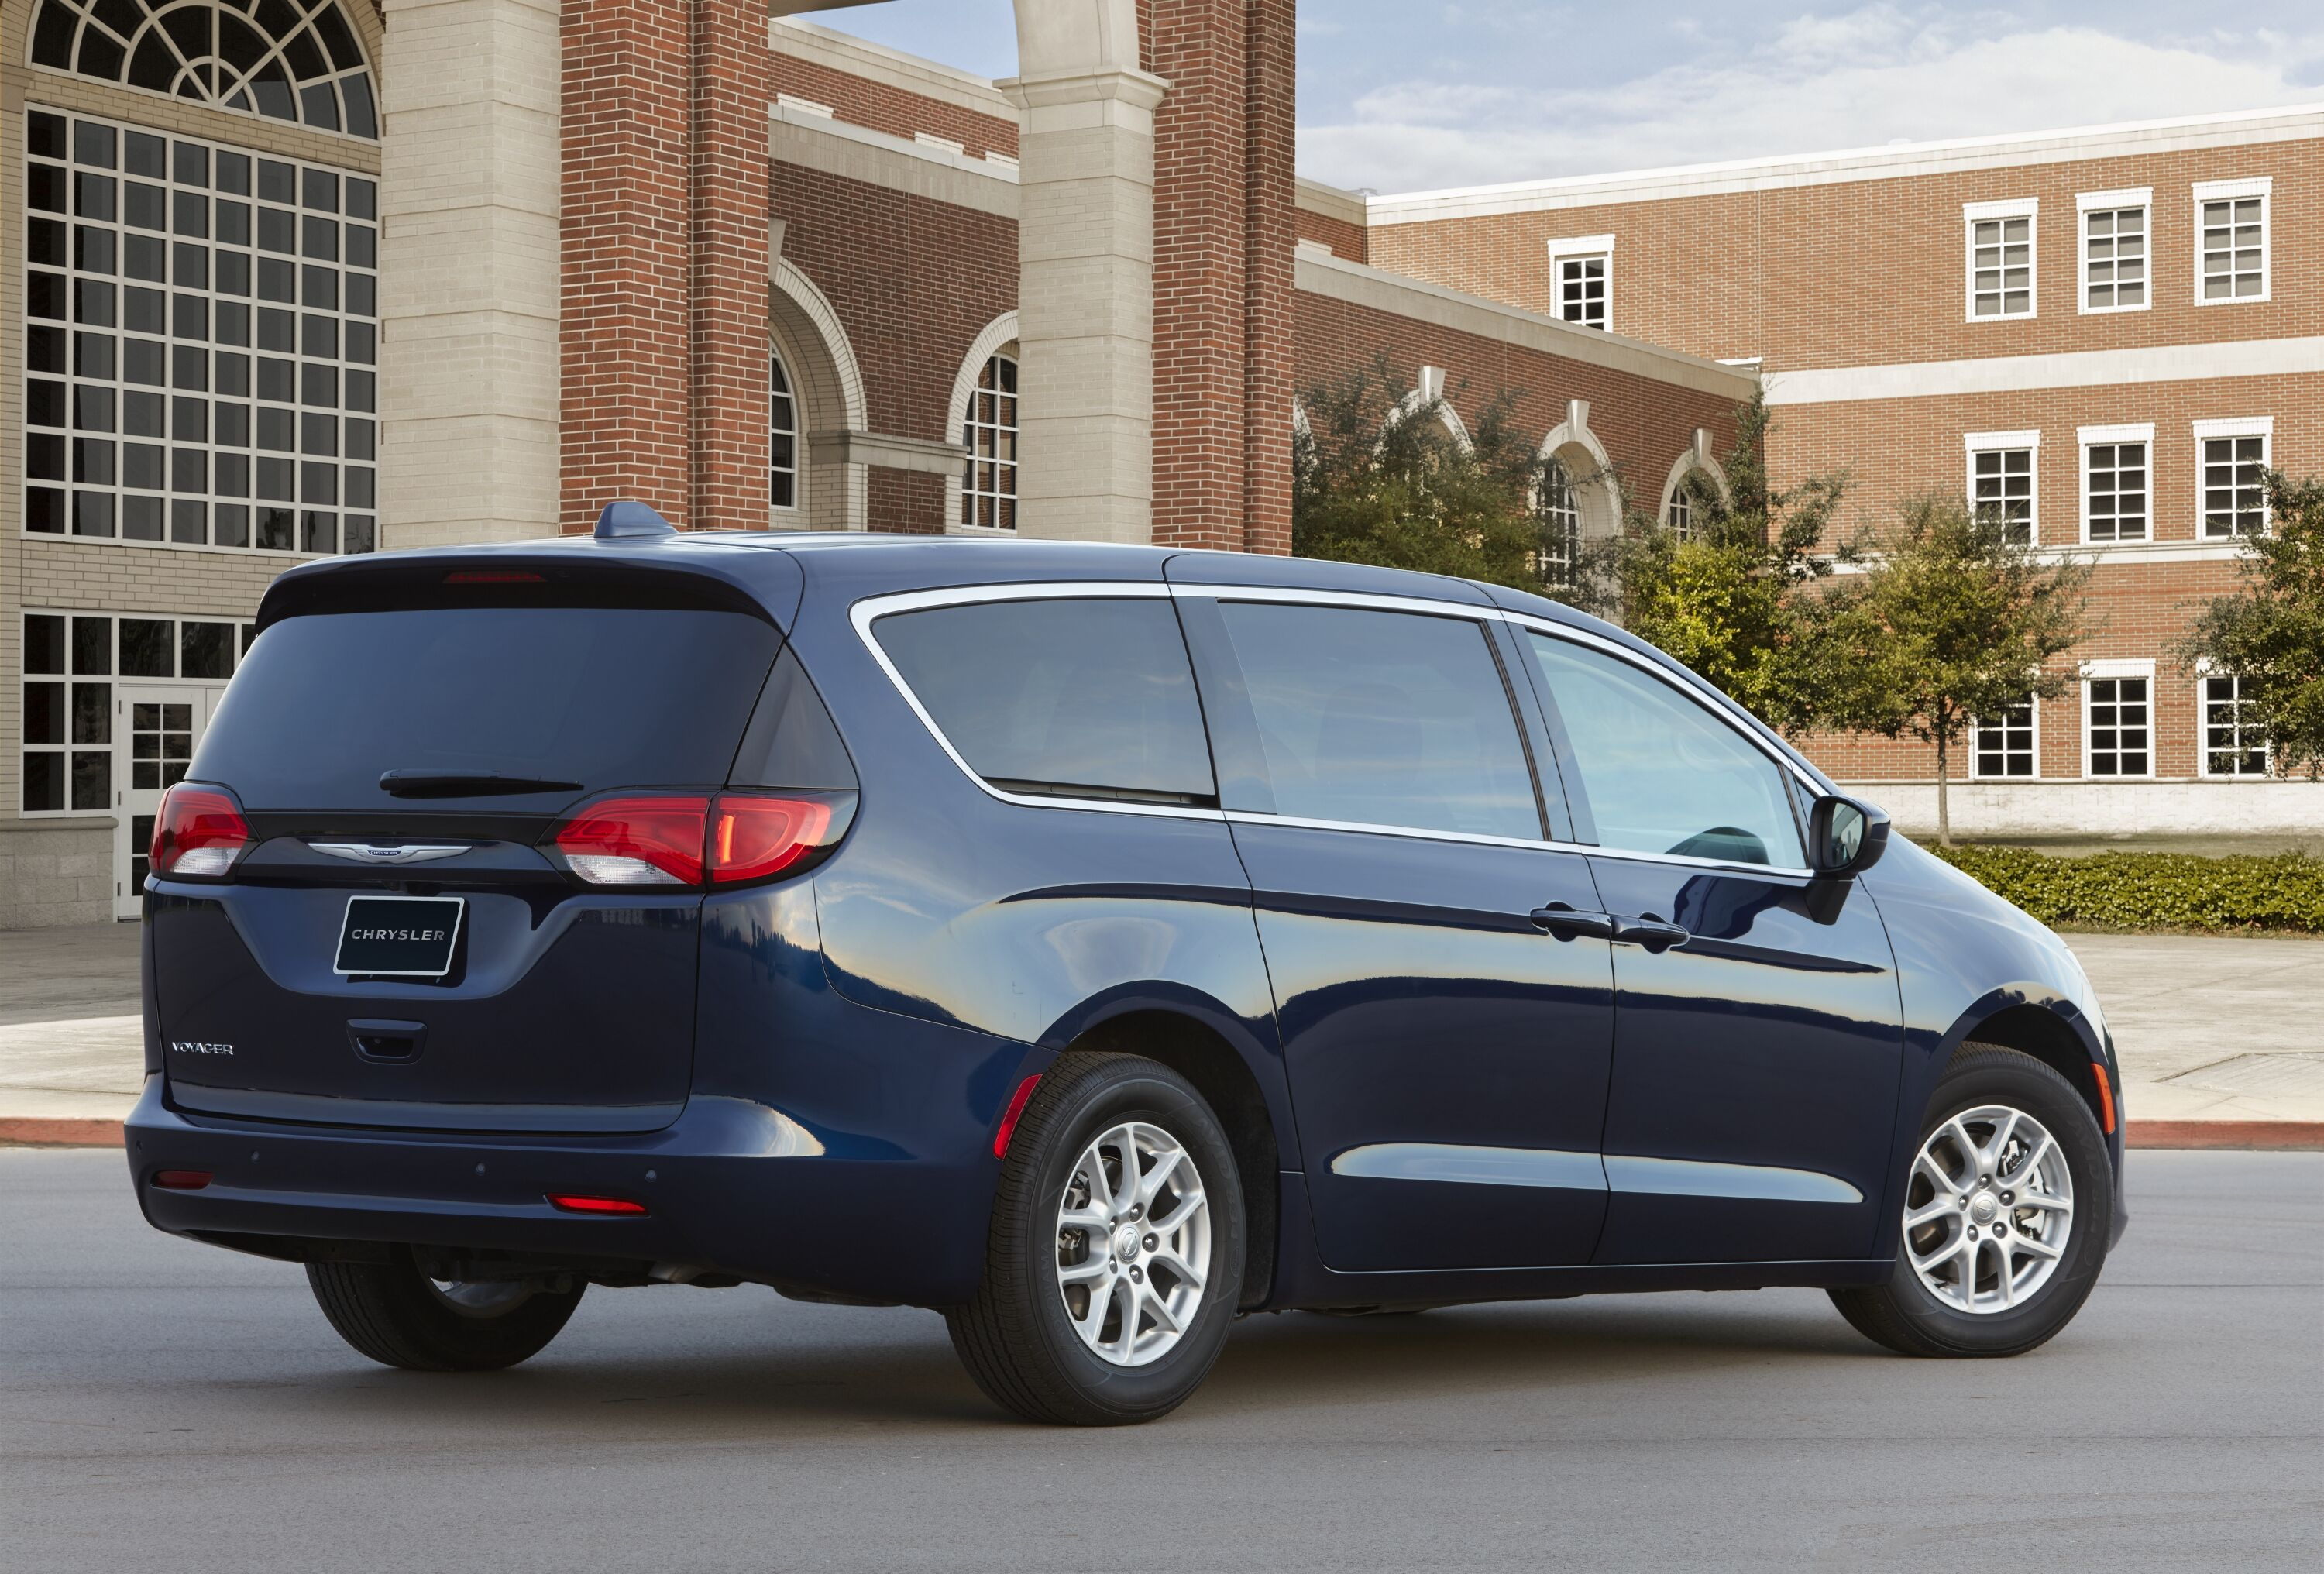 2020 Chrysler Voyager facing old brick buildings